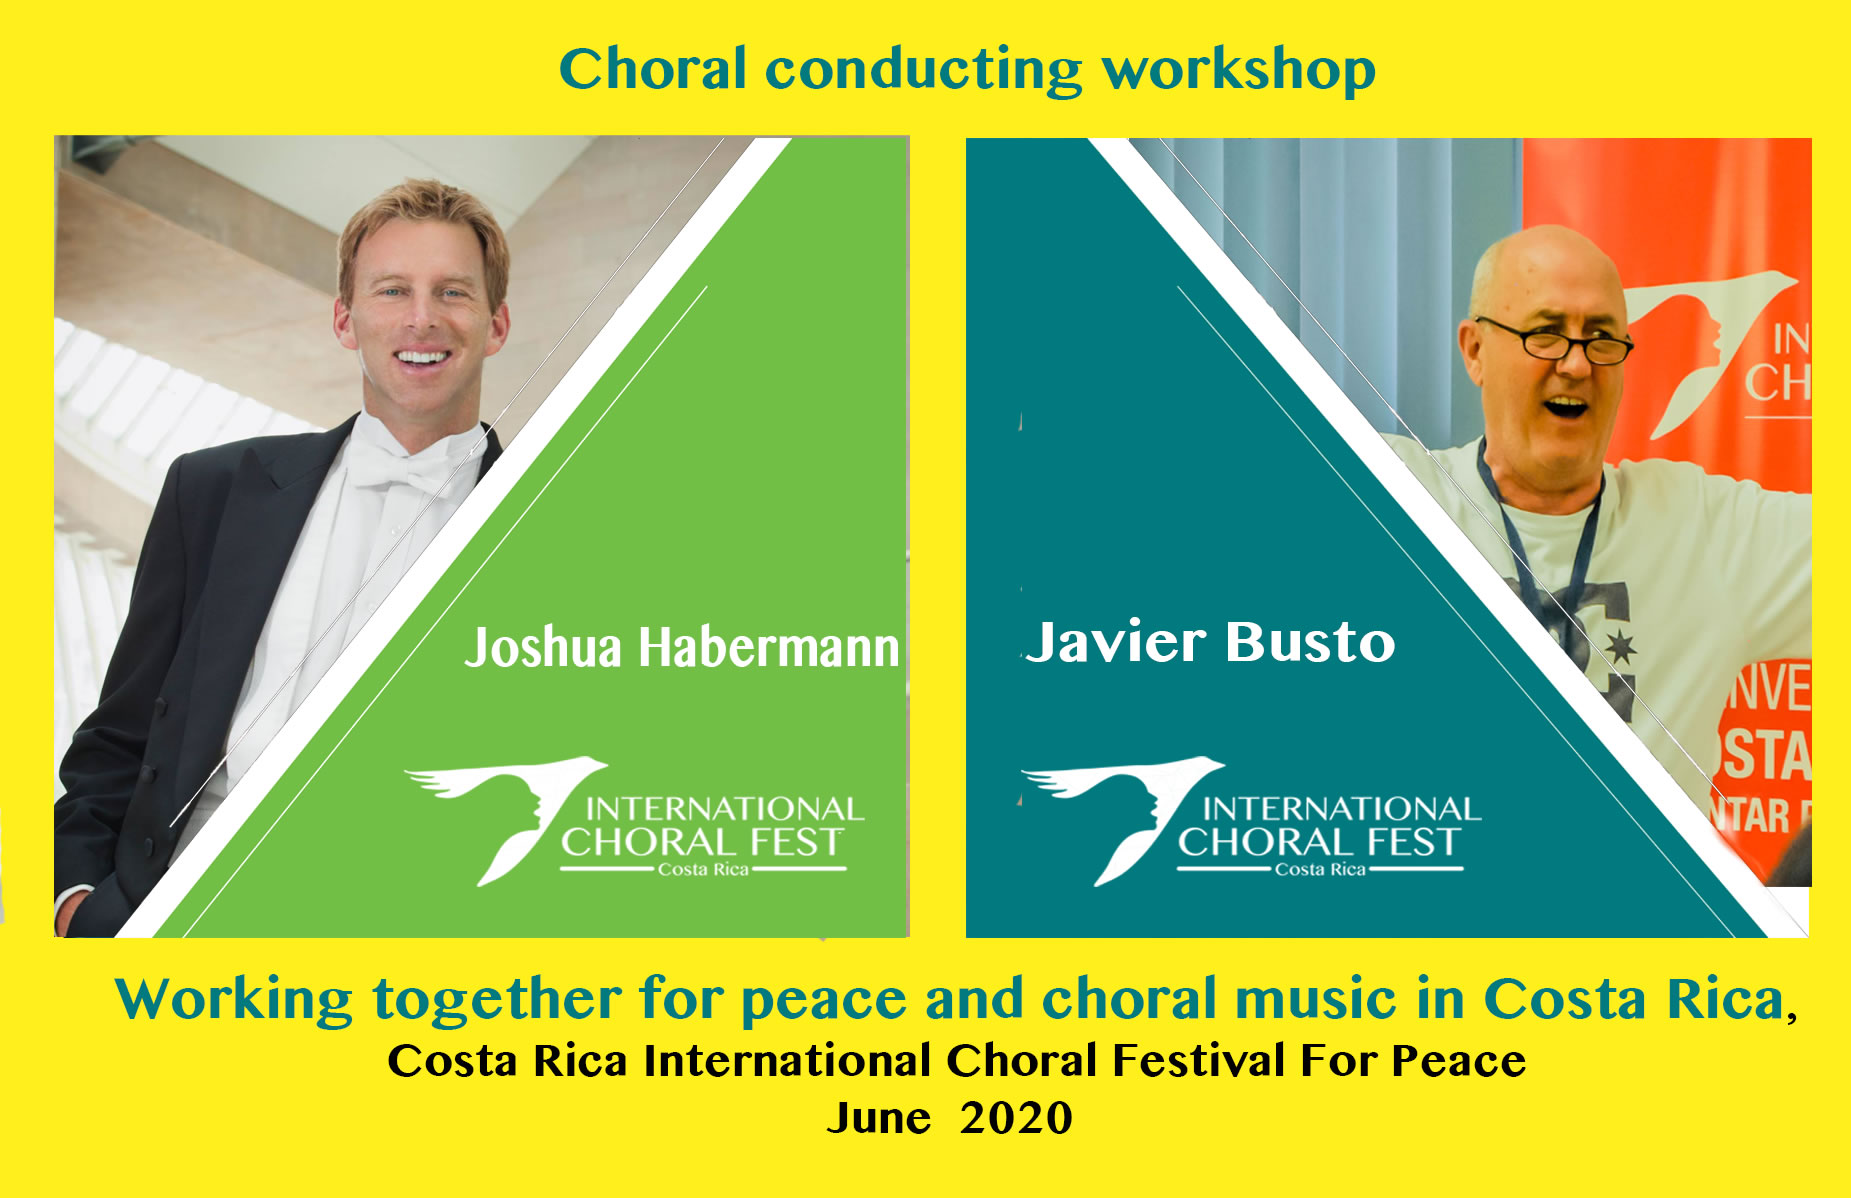 Costa Rica International Choral Festival For Peace June 24th to 30th 2020